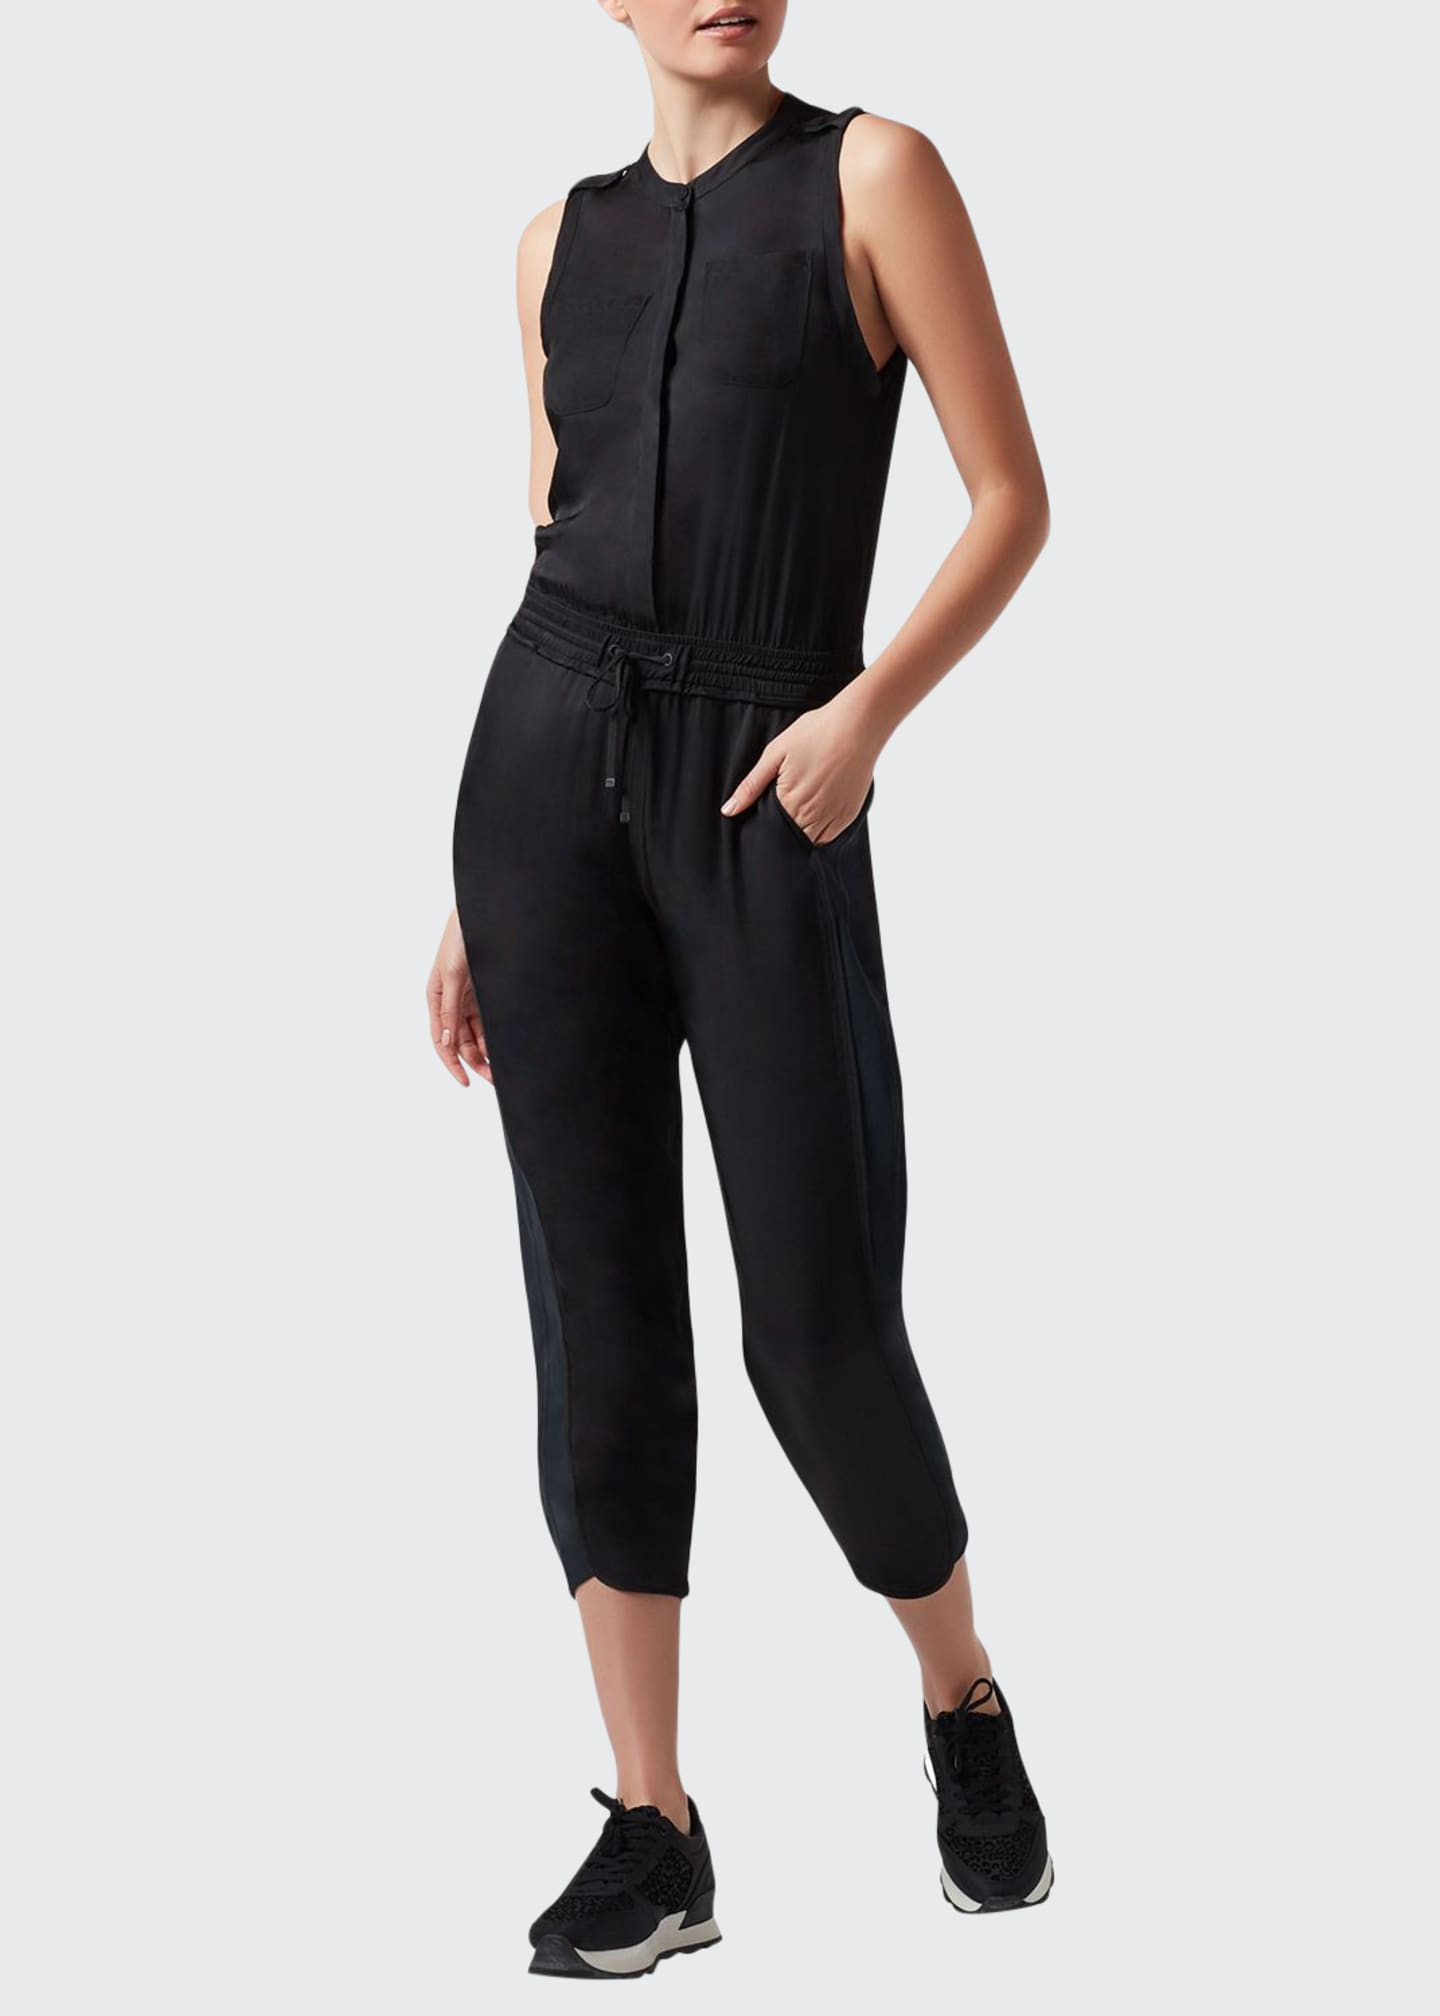 Blanc Noir Finesse Sleeveless Jumpsuit